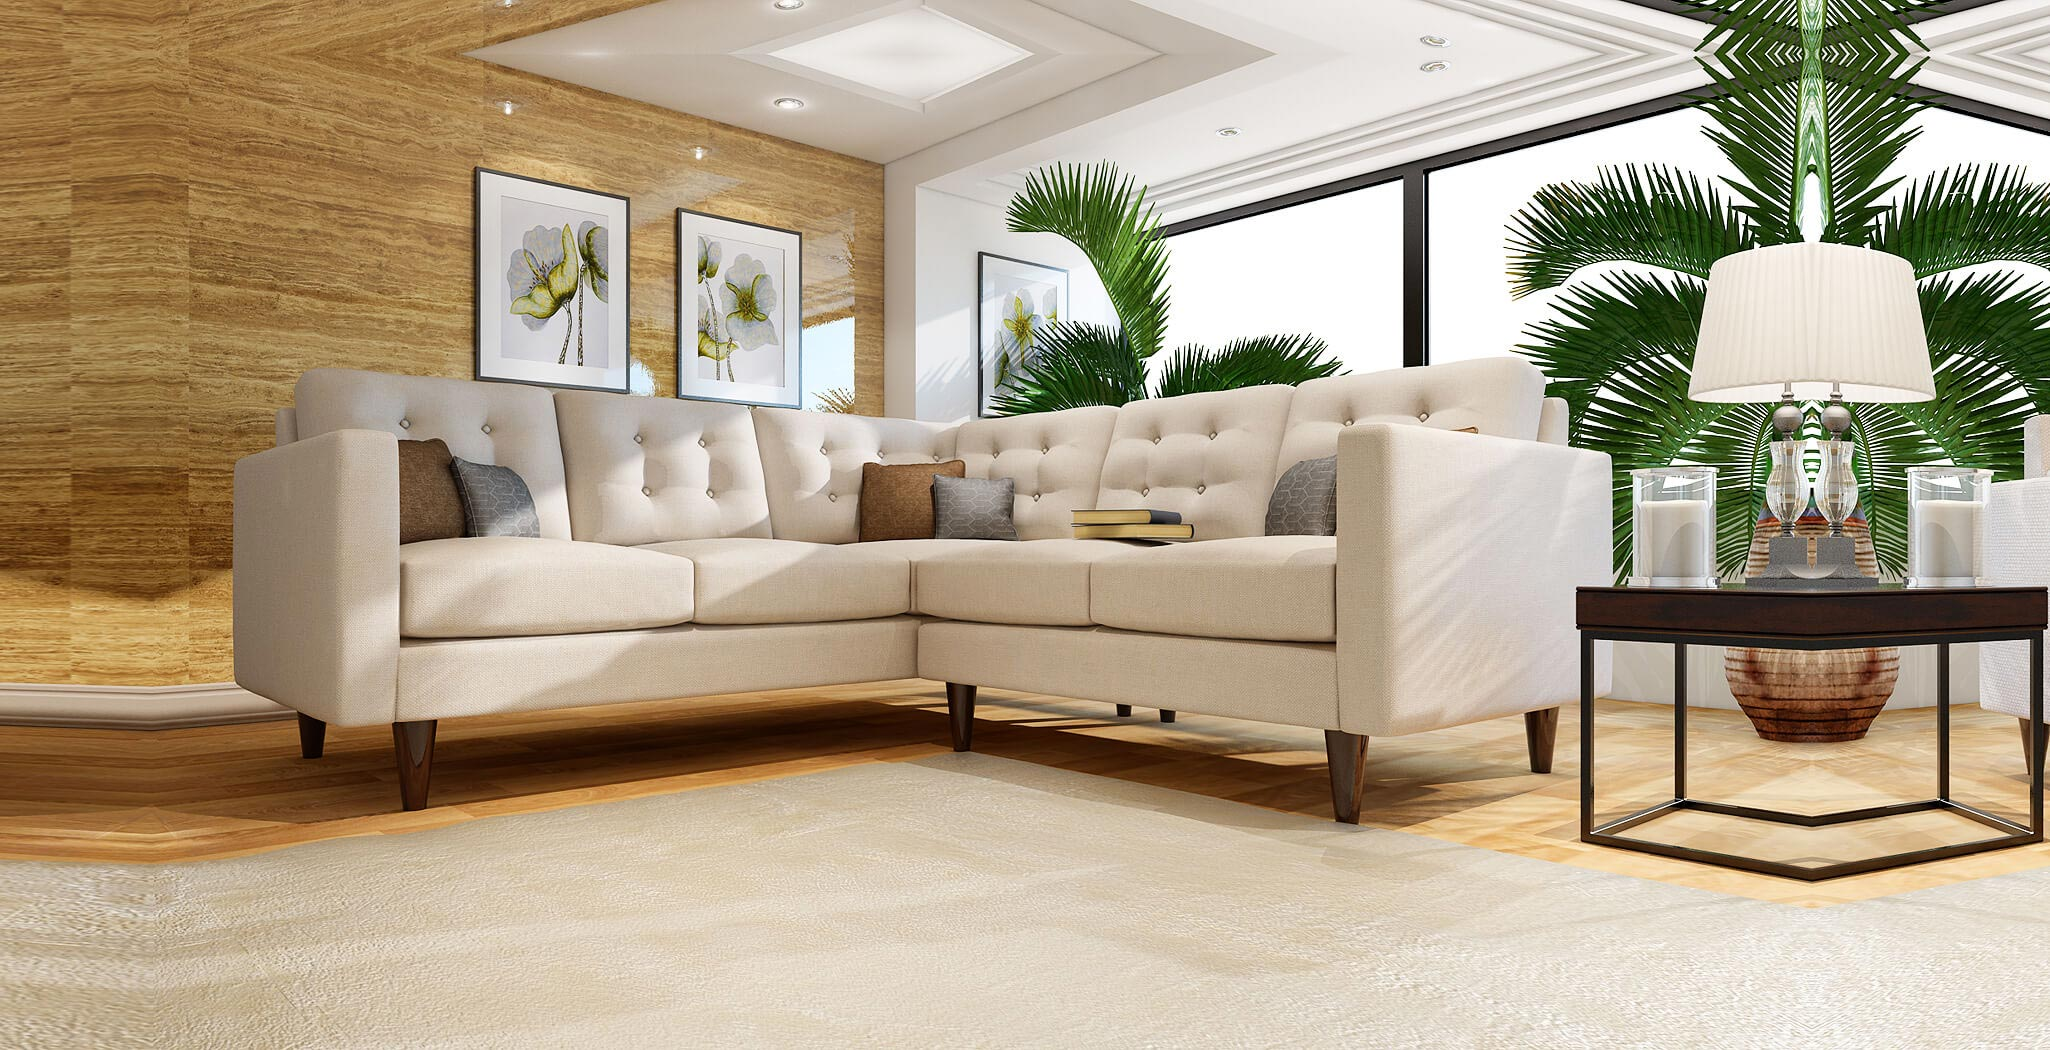 turin sectional furniture gallery 1